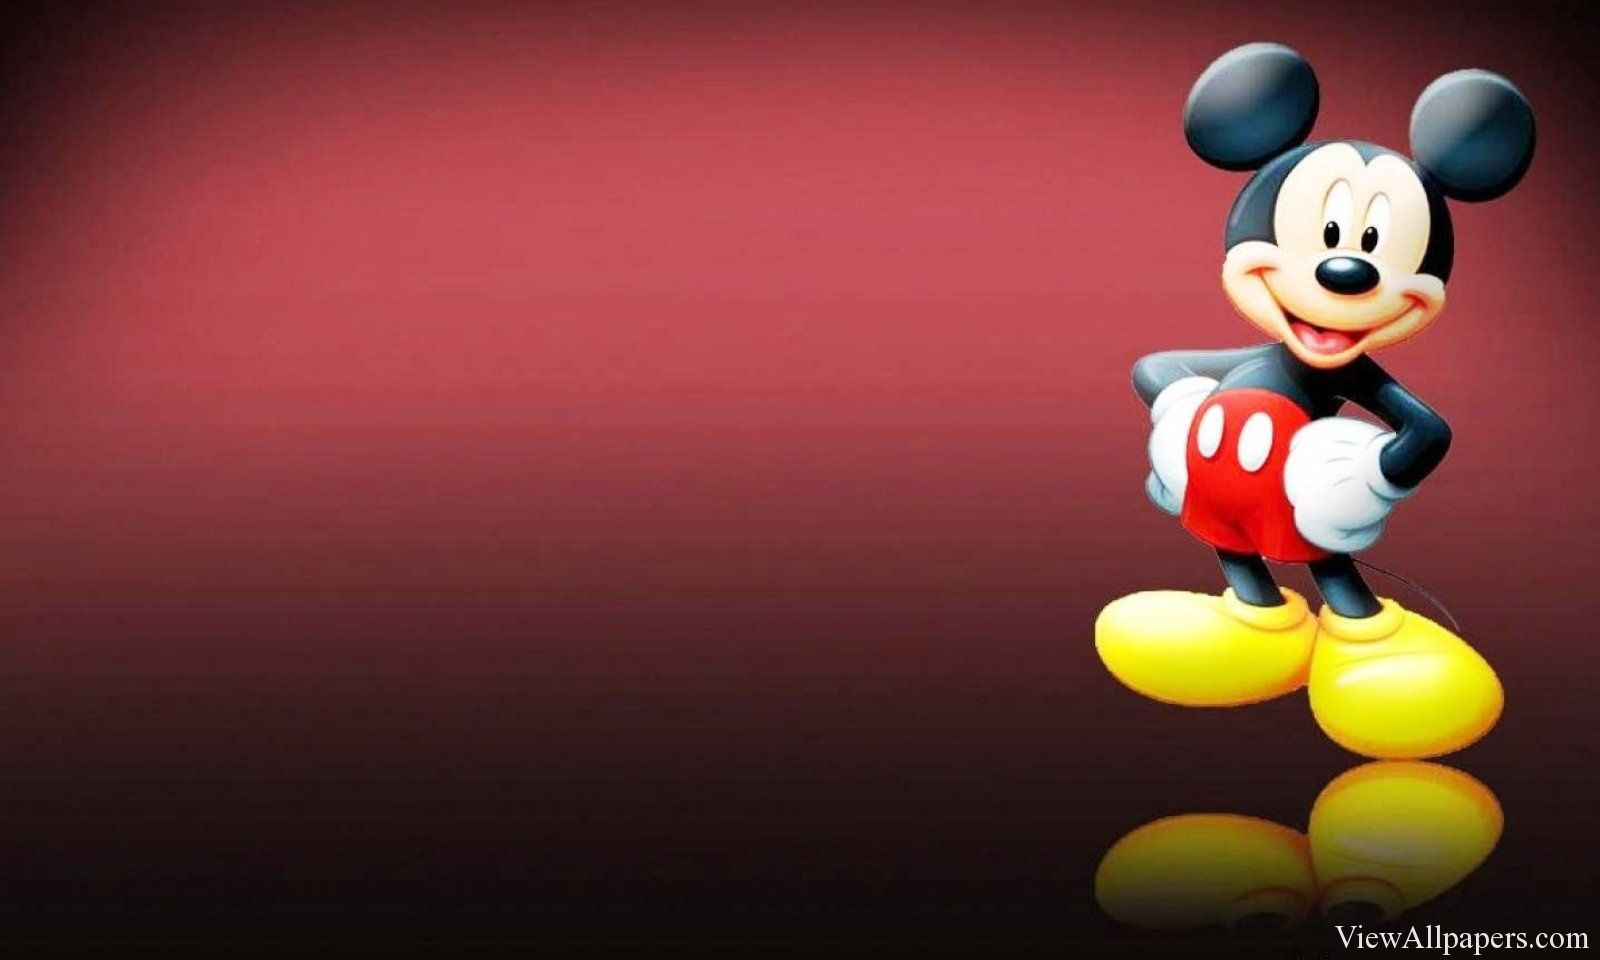 Mickey Mouse 3d Wallpaper Viewallpapers Pinterest